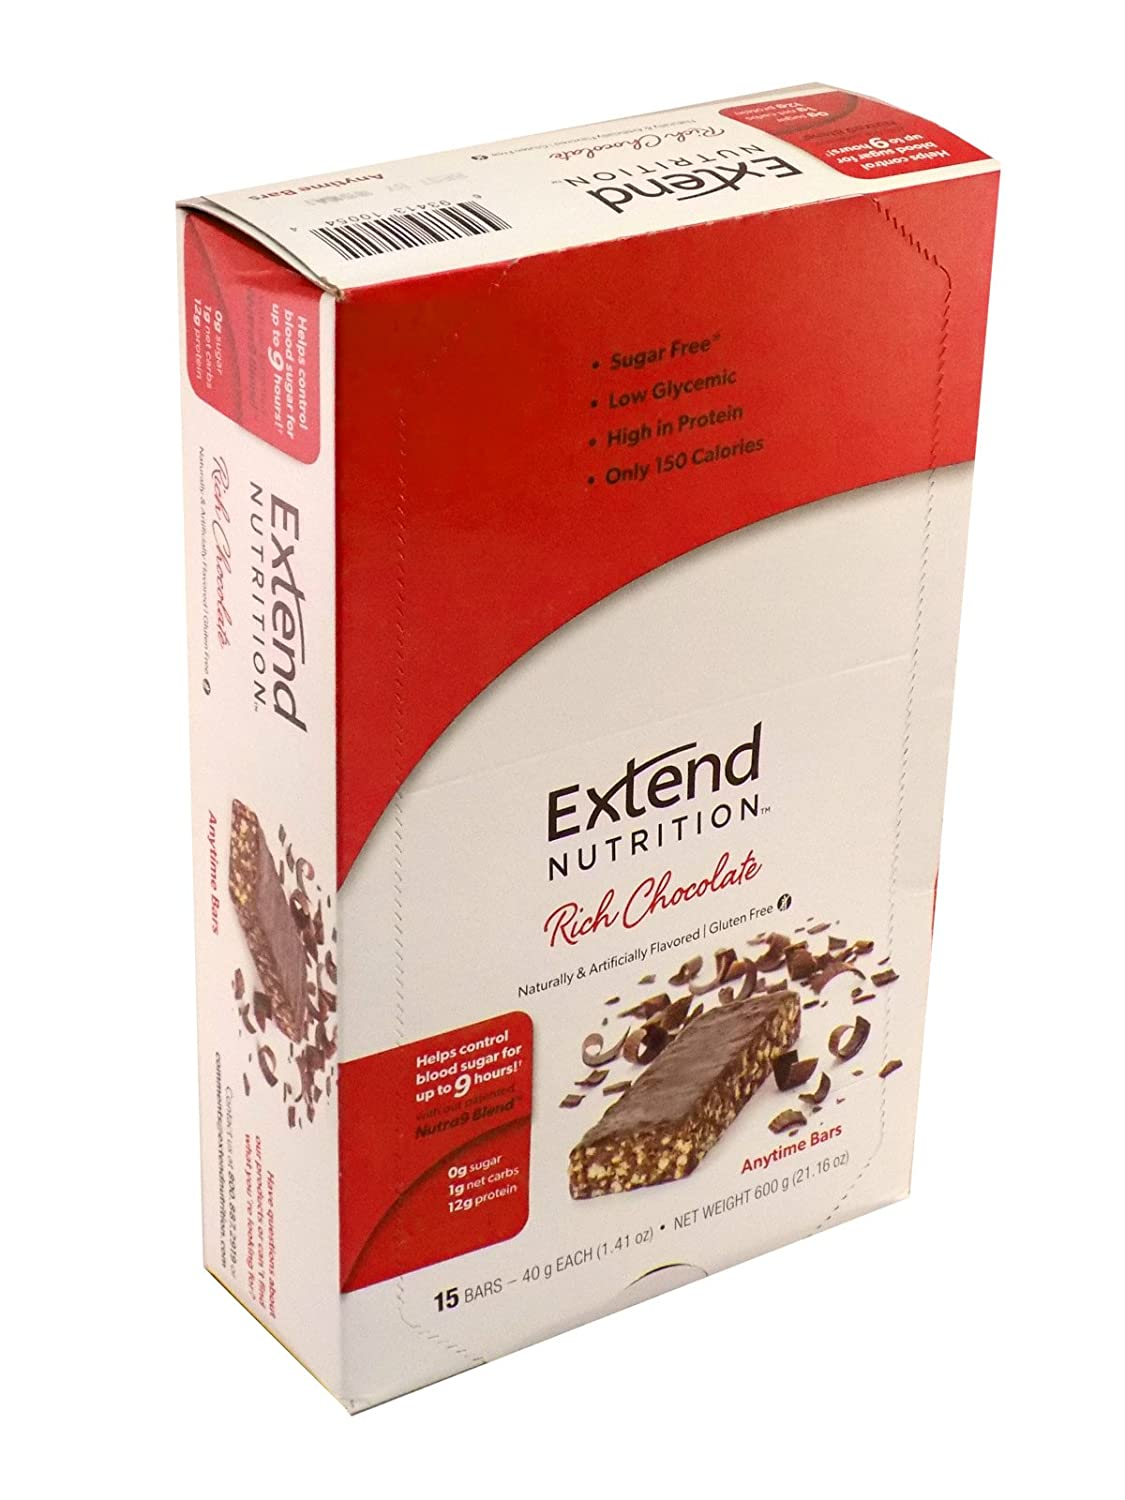 Amazon.com: Extend Bar, Rich Chocolate, 1.41 oz. Bars (Pack of 15 ...